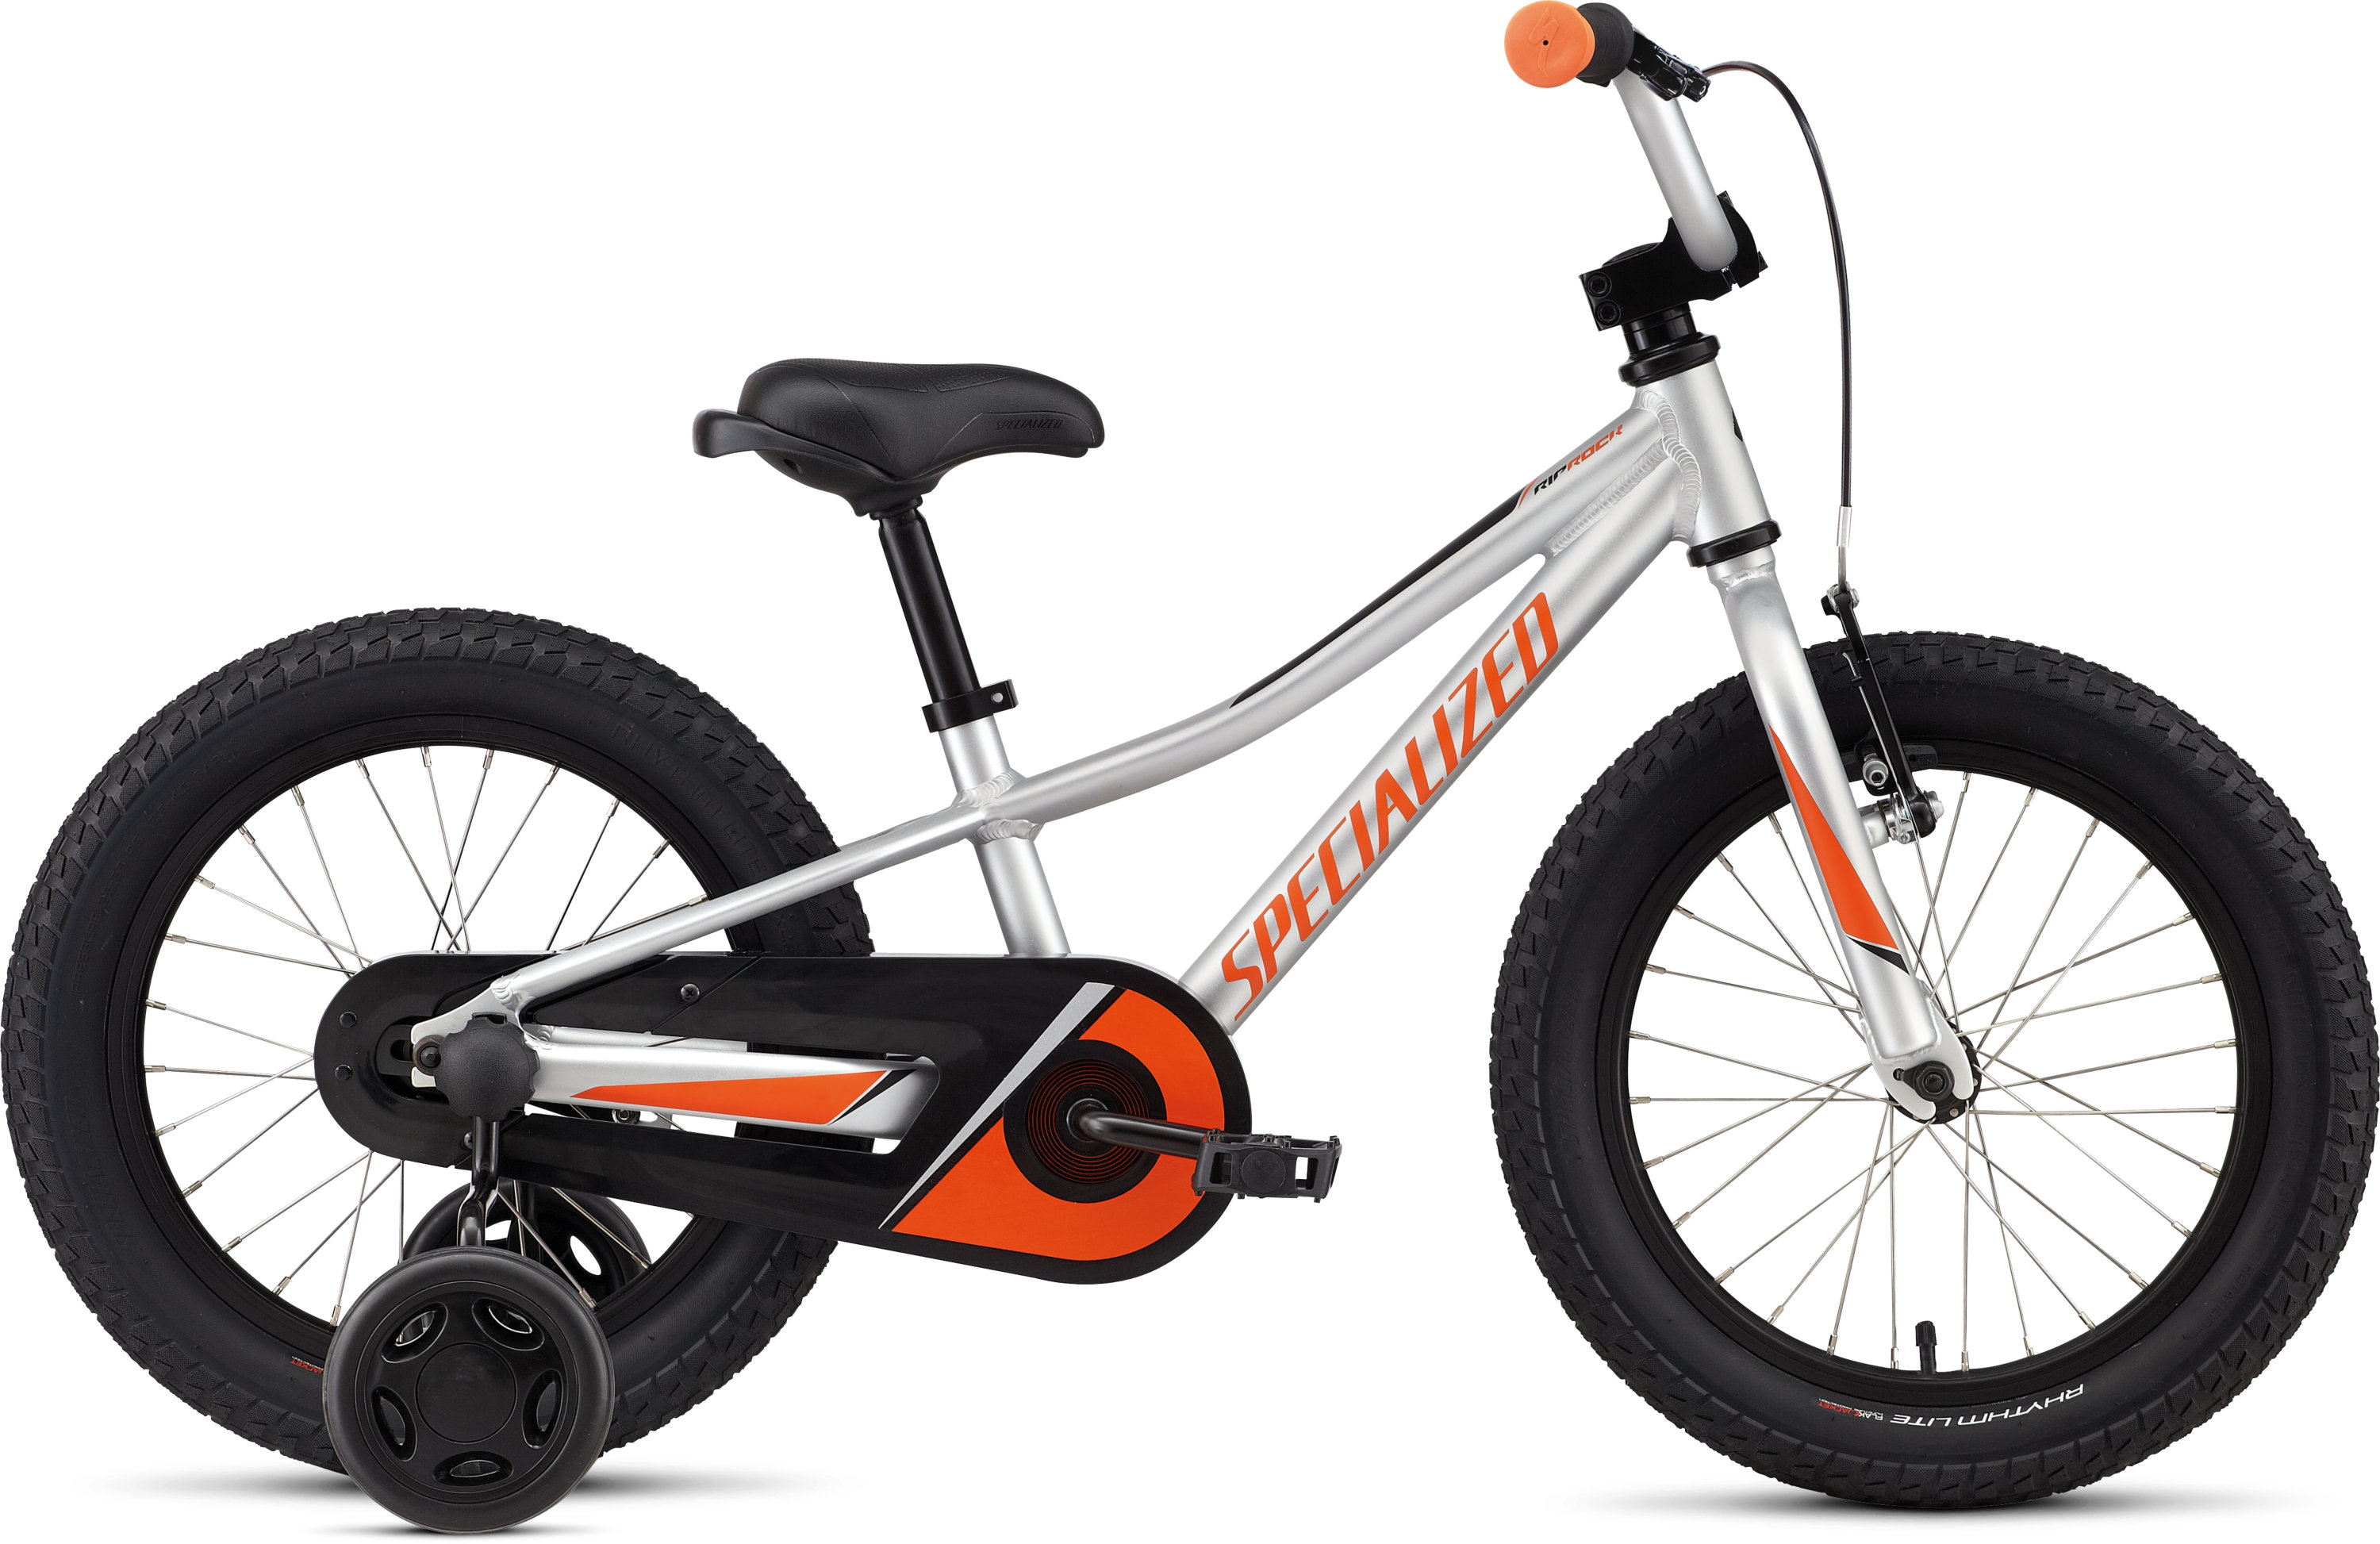 Specialized Riprock Coaster 16 Satin Light Silver/Moto Orange/Black 7 - Pulsschlag Bike+Sport